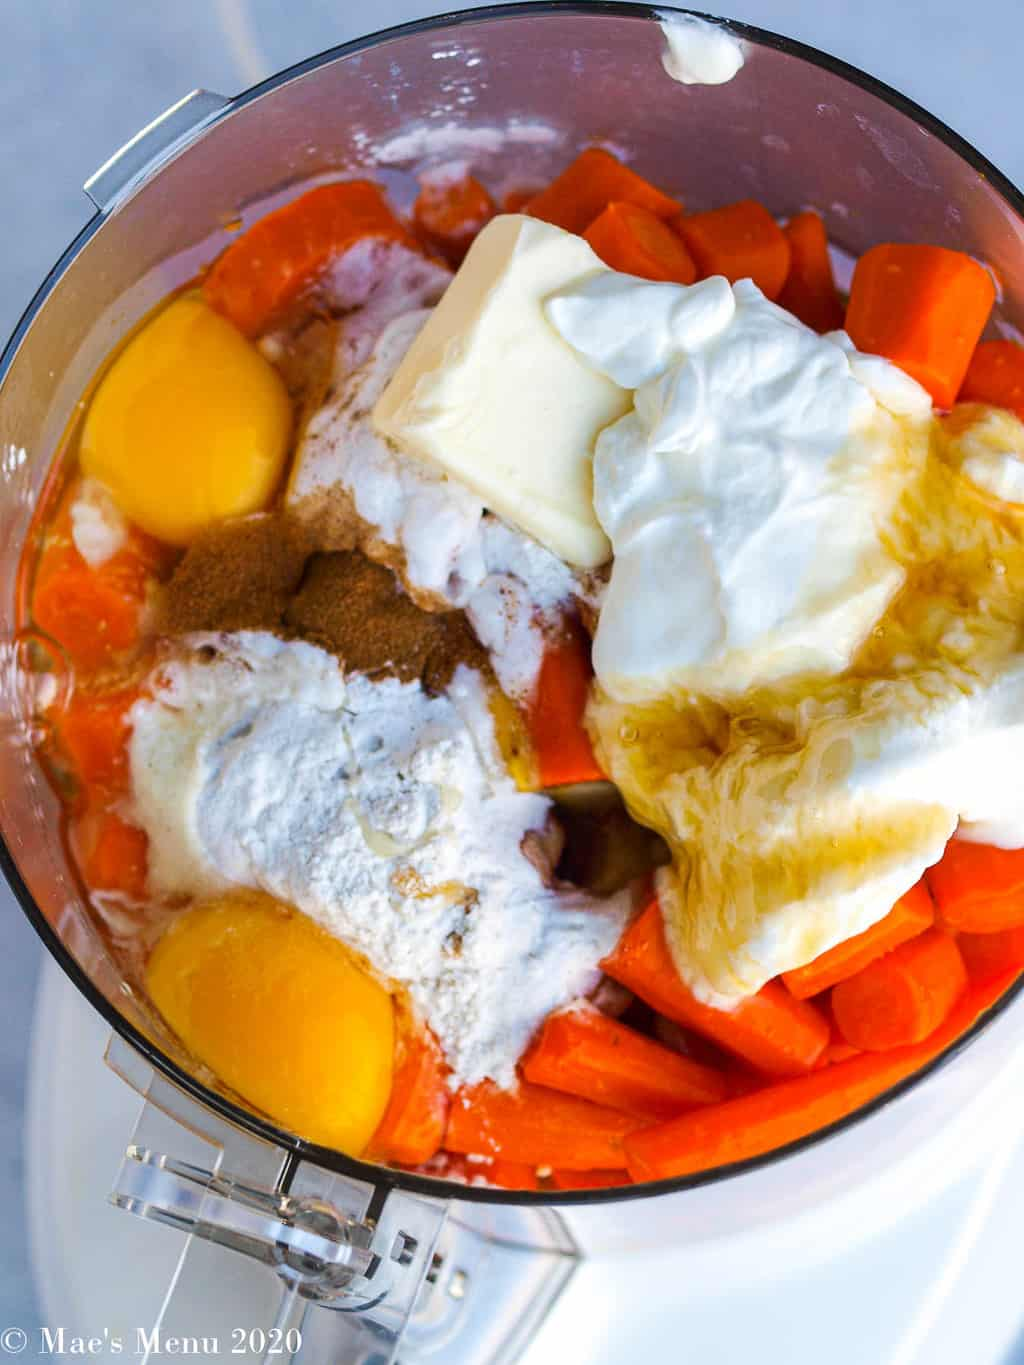 All of the carrot souffle ingredients in the bowl of the food processor